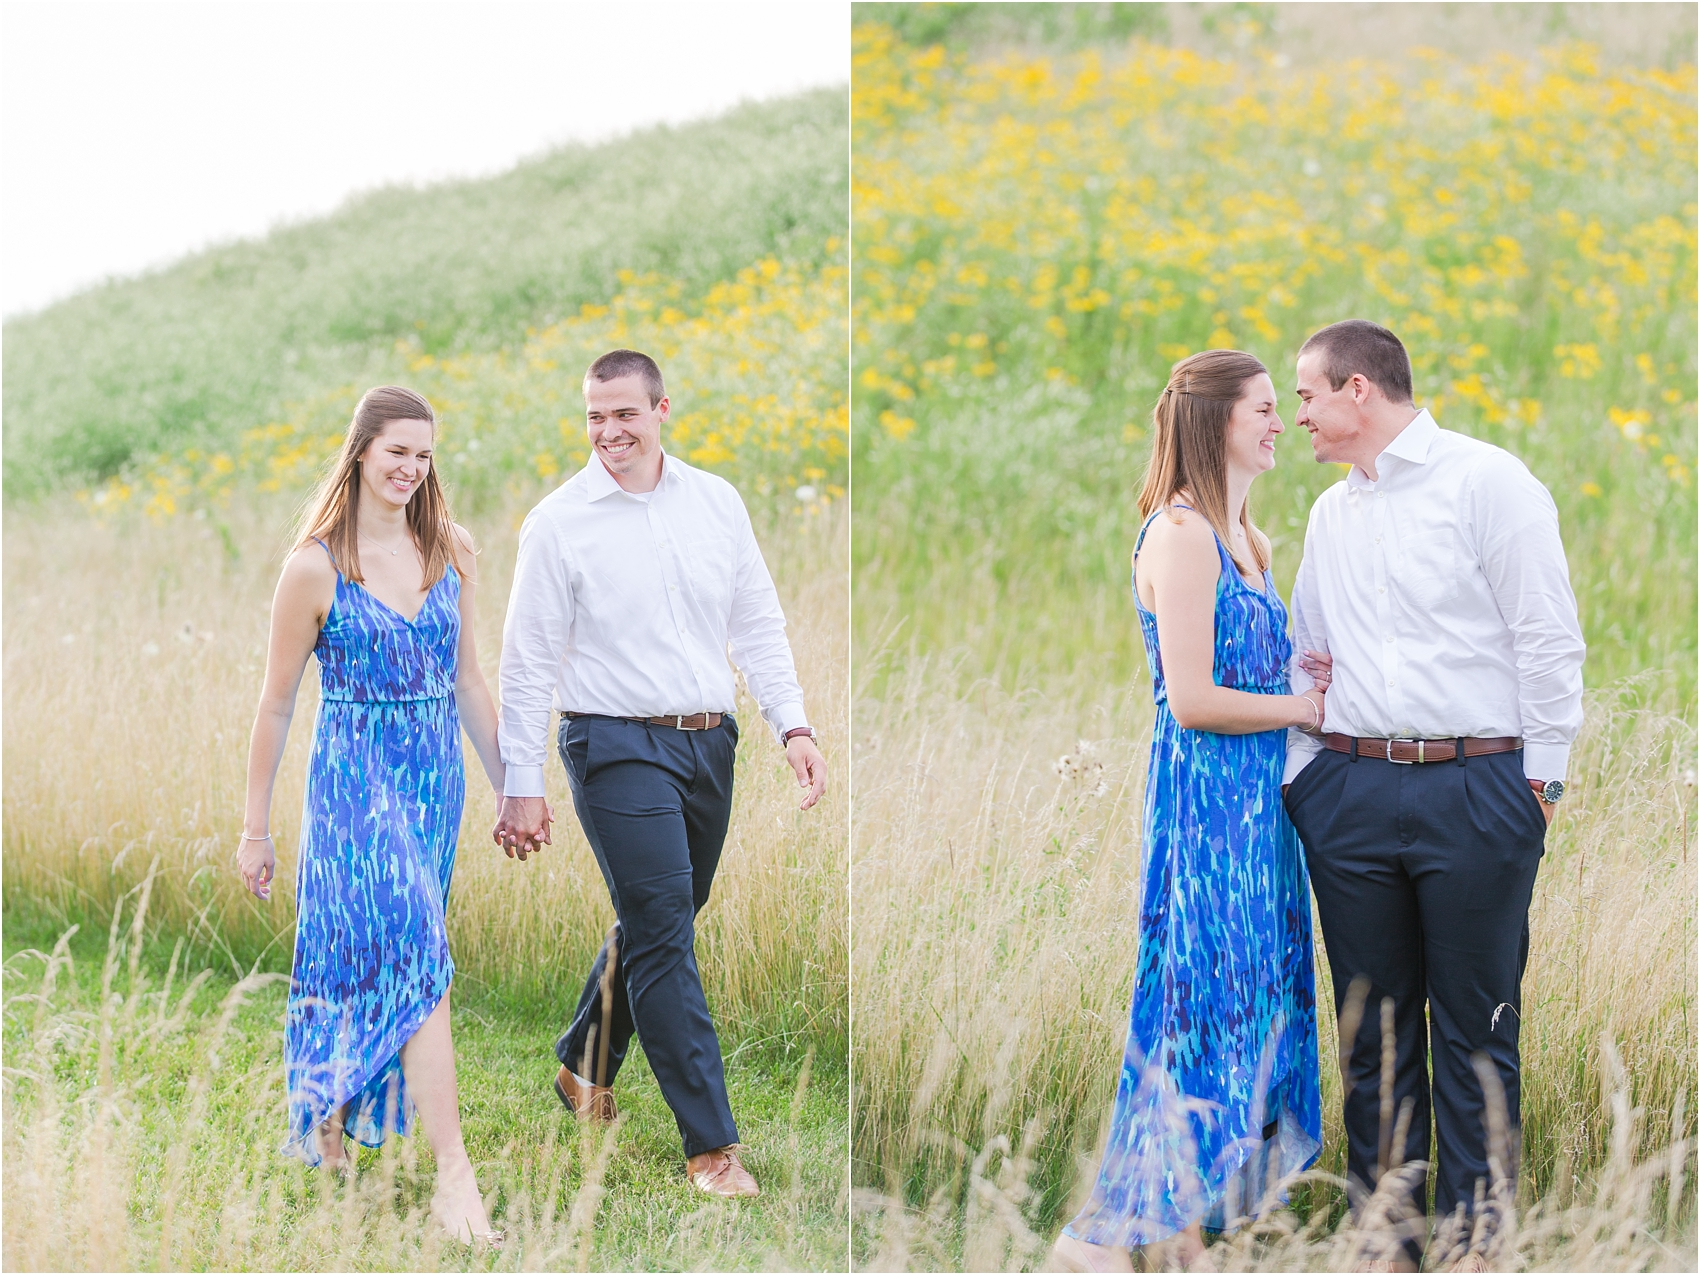 light-hearted-sunset-engagement-photos-at-the-beach-in-oregon-oh-by-courtney-carolyn-photography_0018.jpg